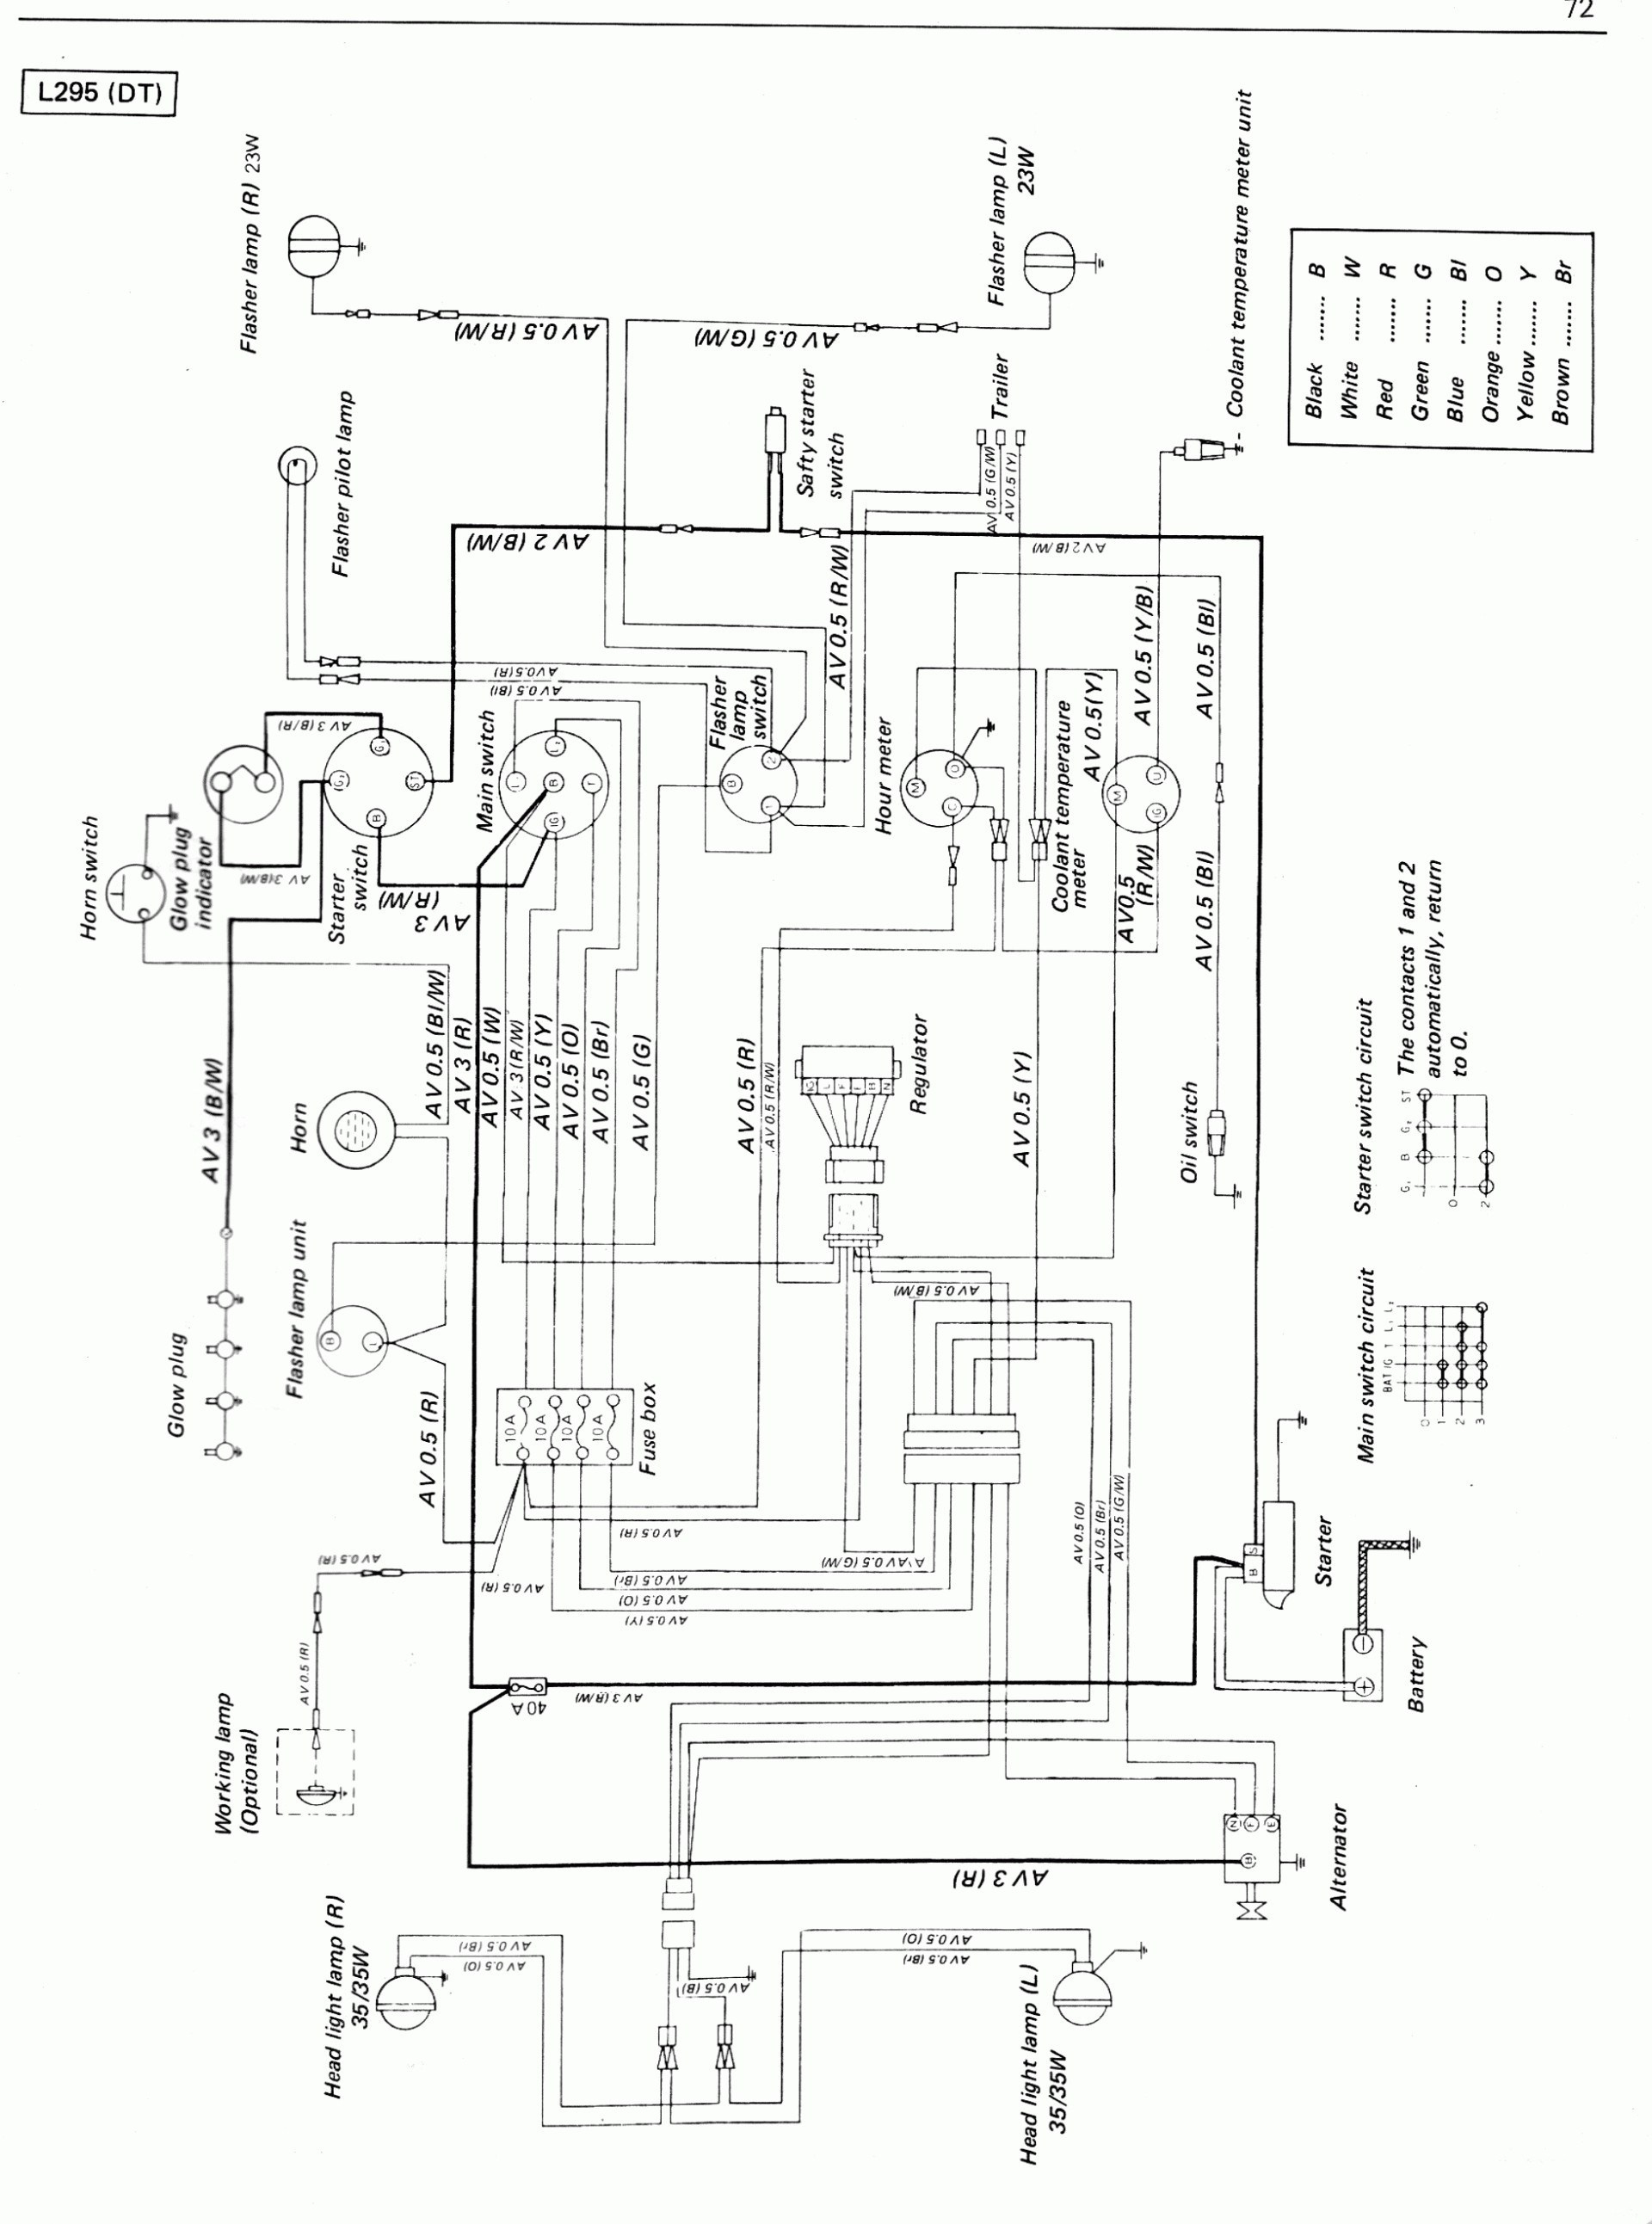 Bx Wiring Diagrams | Wiring Schematic Diagram on kubota l175 wiring diagram, kubota tractor bx2200 parts diagram, l245 kubota tractor diagrams, kubota ignition switch wiring diagram, kubota tractor transmission diagrams, kubota bx24 tractor parts diagrams, kubota work light wiring diagram, kubota tractor hydraulic system diagram, kubota tractor radio wiring diagram, kubota generator wiring diagram, kubota wiring diagram pdf, kubota b7100 wiring diagram, john deere tractor wiring diagrams, kubota tractor safety switch wiring diagram, kubota bx tractor accessories, kubota wiring diagram online, kubota bx24 wiring diagram, kubota tractor fuse box location, kubota starter wiring, kubota bx tractor battery,